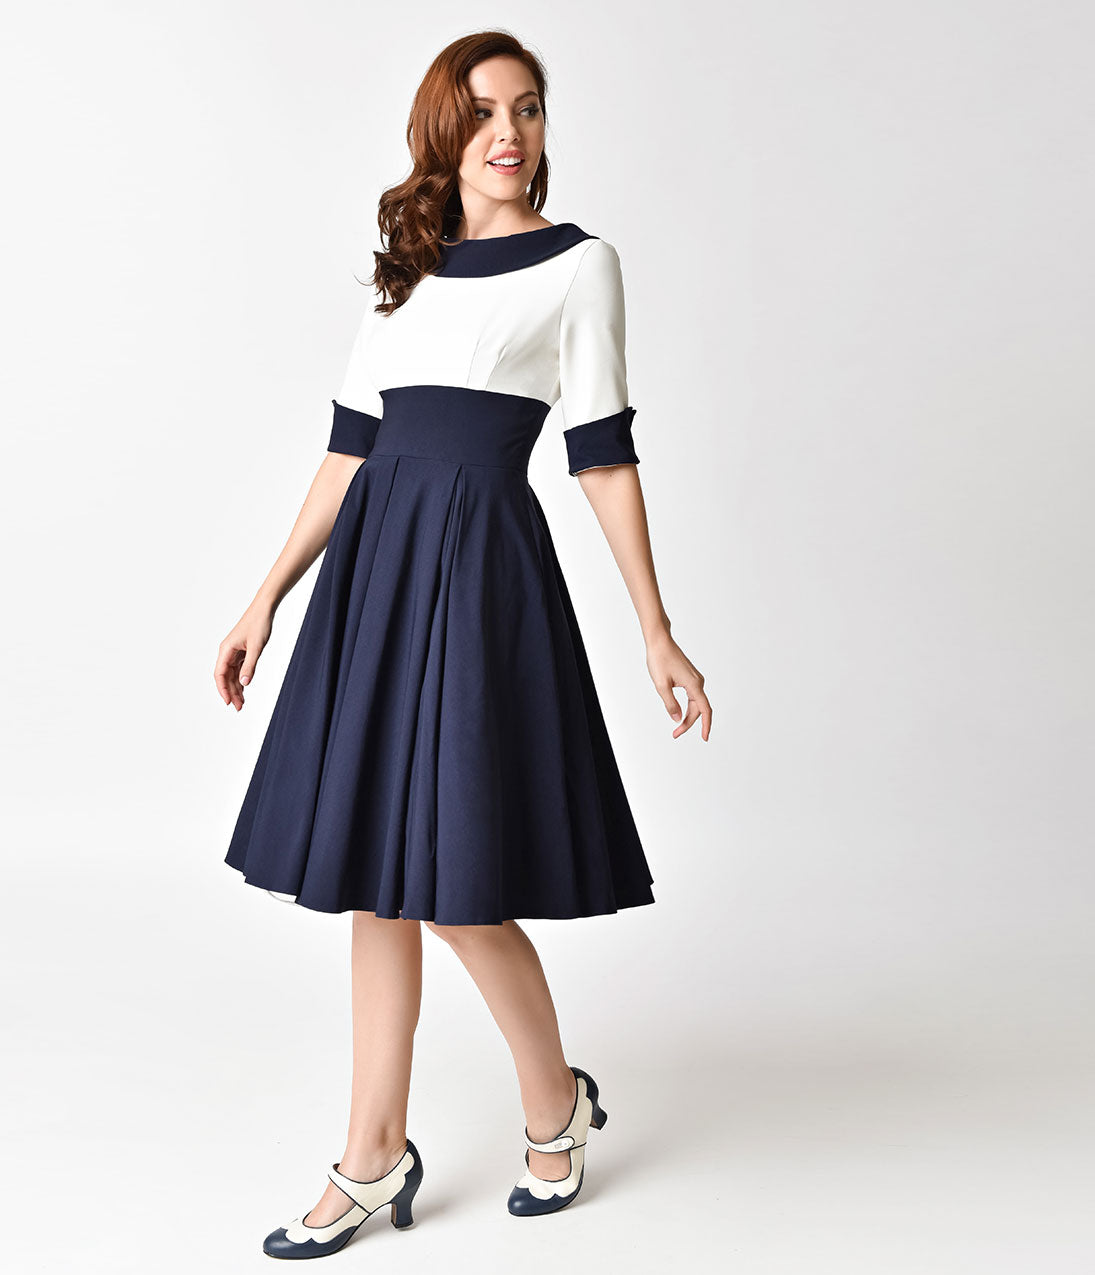 Sailor Dresses Nautical Dress Pin Up Amp Ww2 Dresses